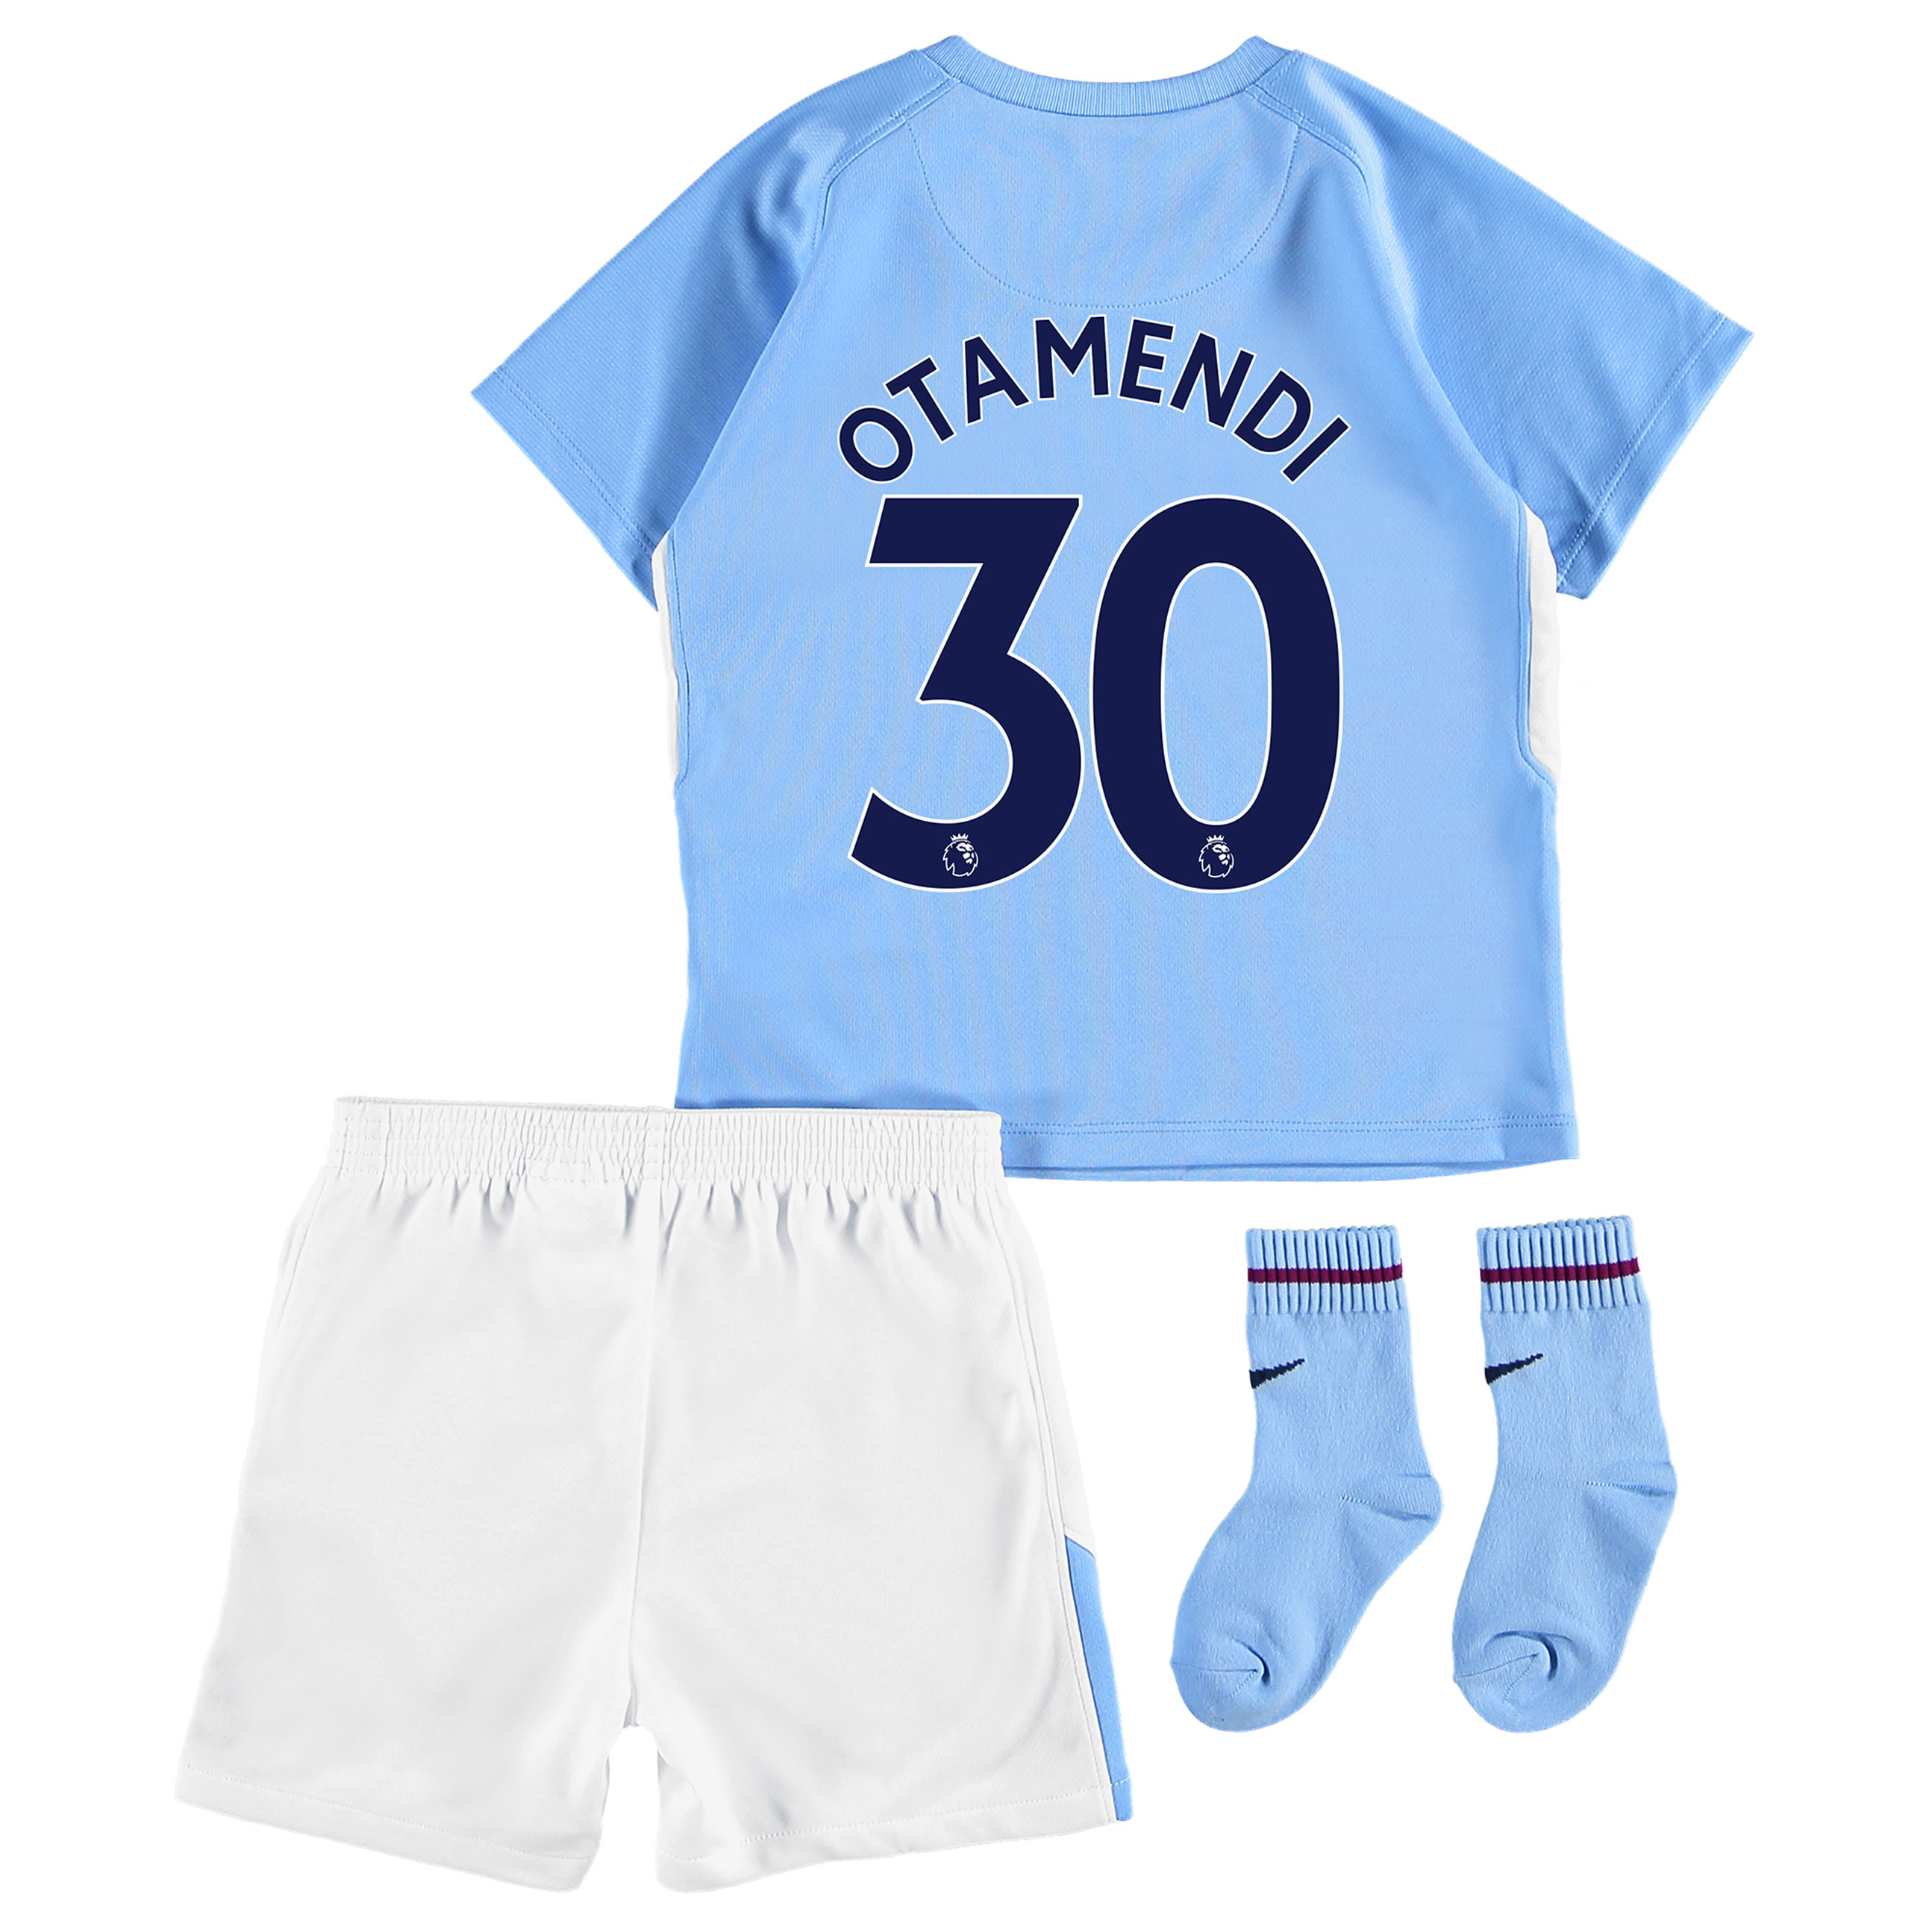 Manchester City Home Stadium Kit 2017-18 - Infants with Otamendi 30 pr